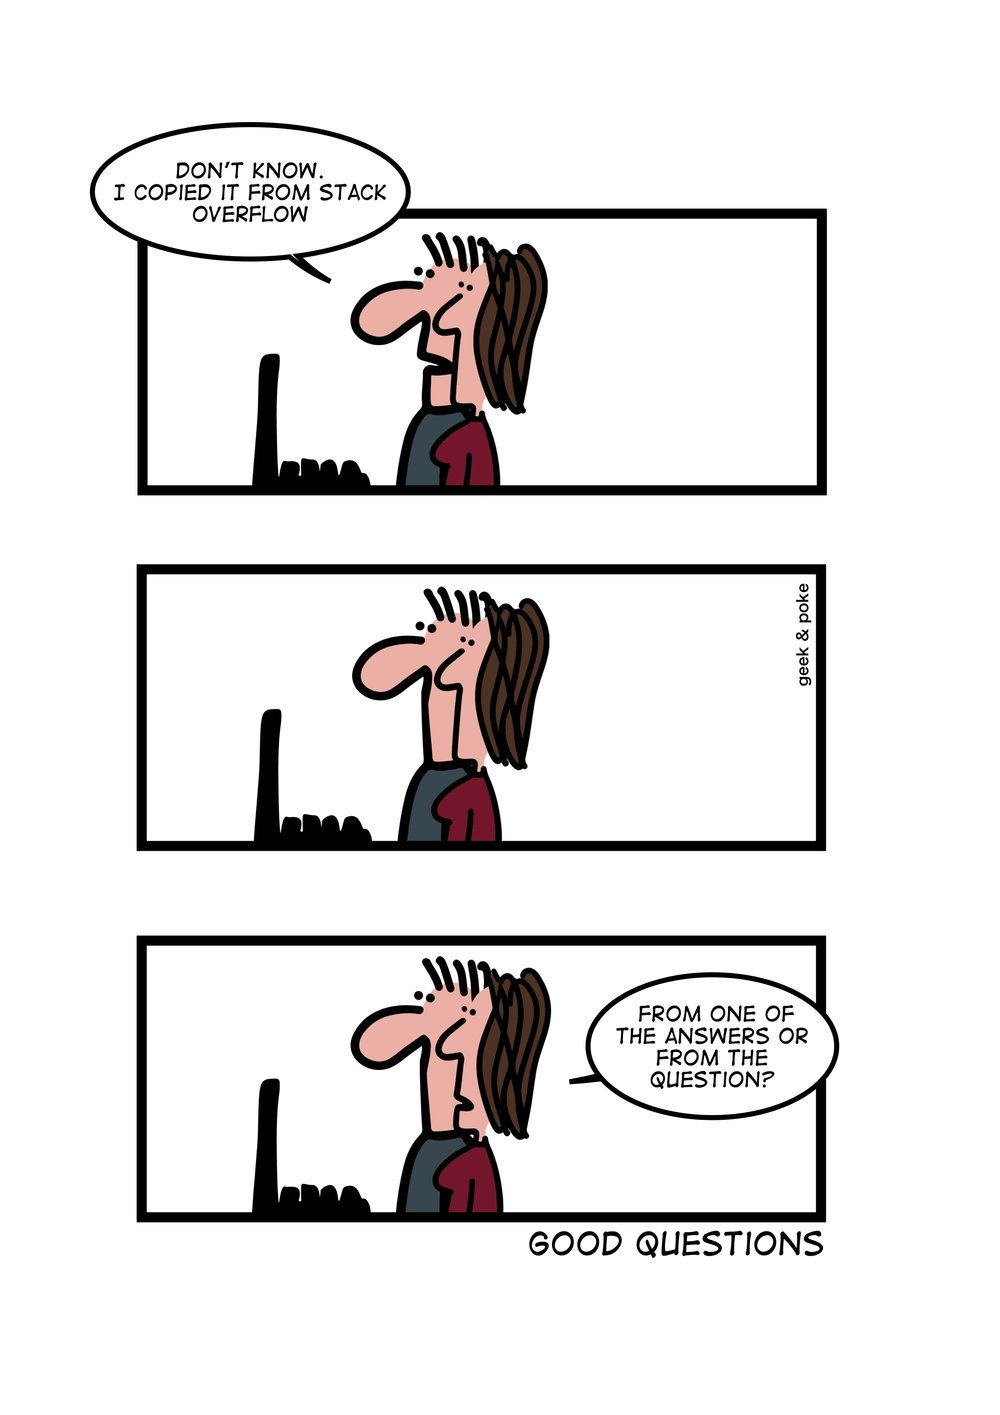 copied from stack overflow